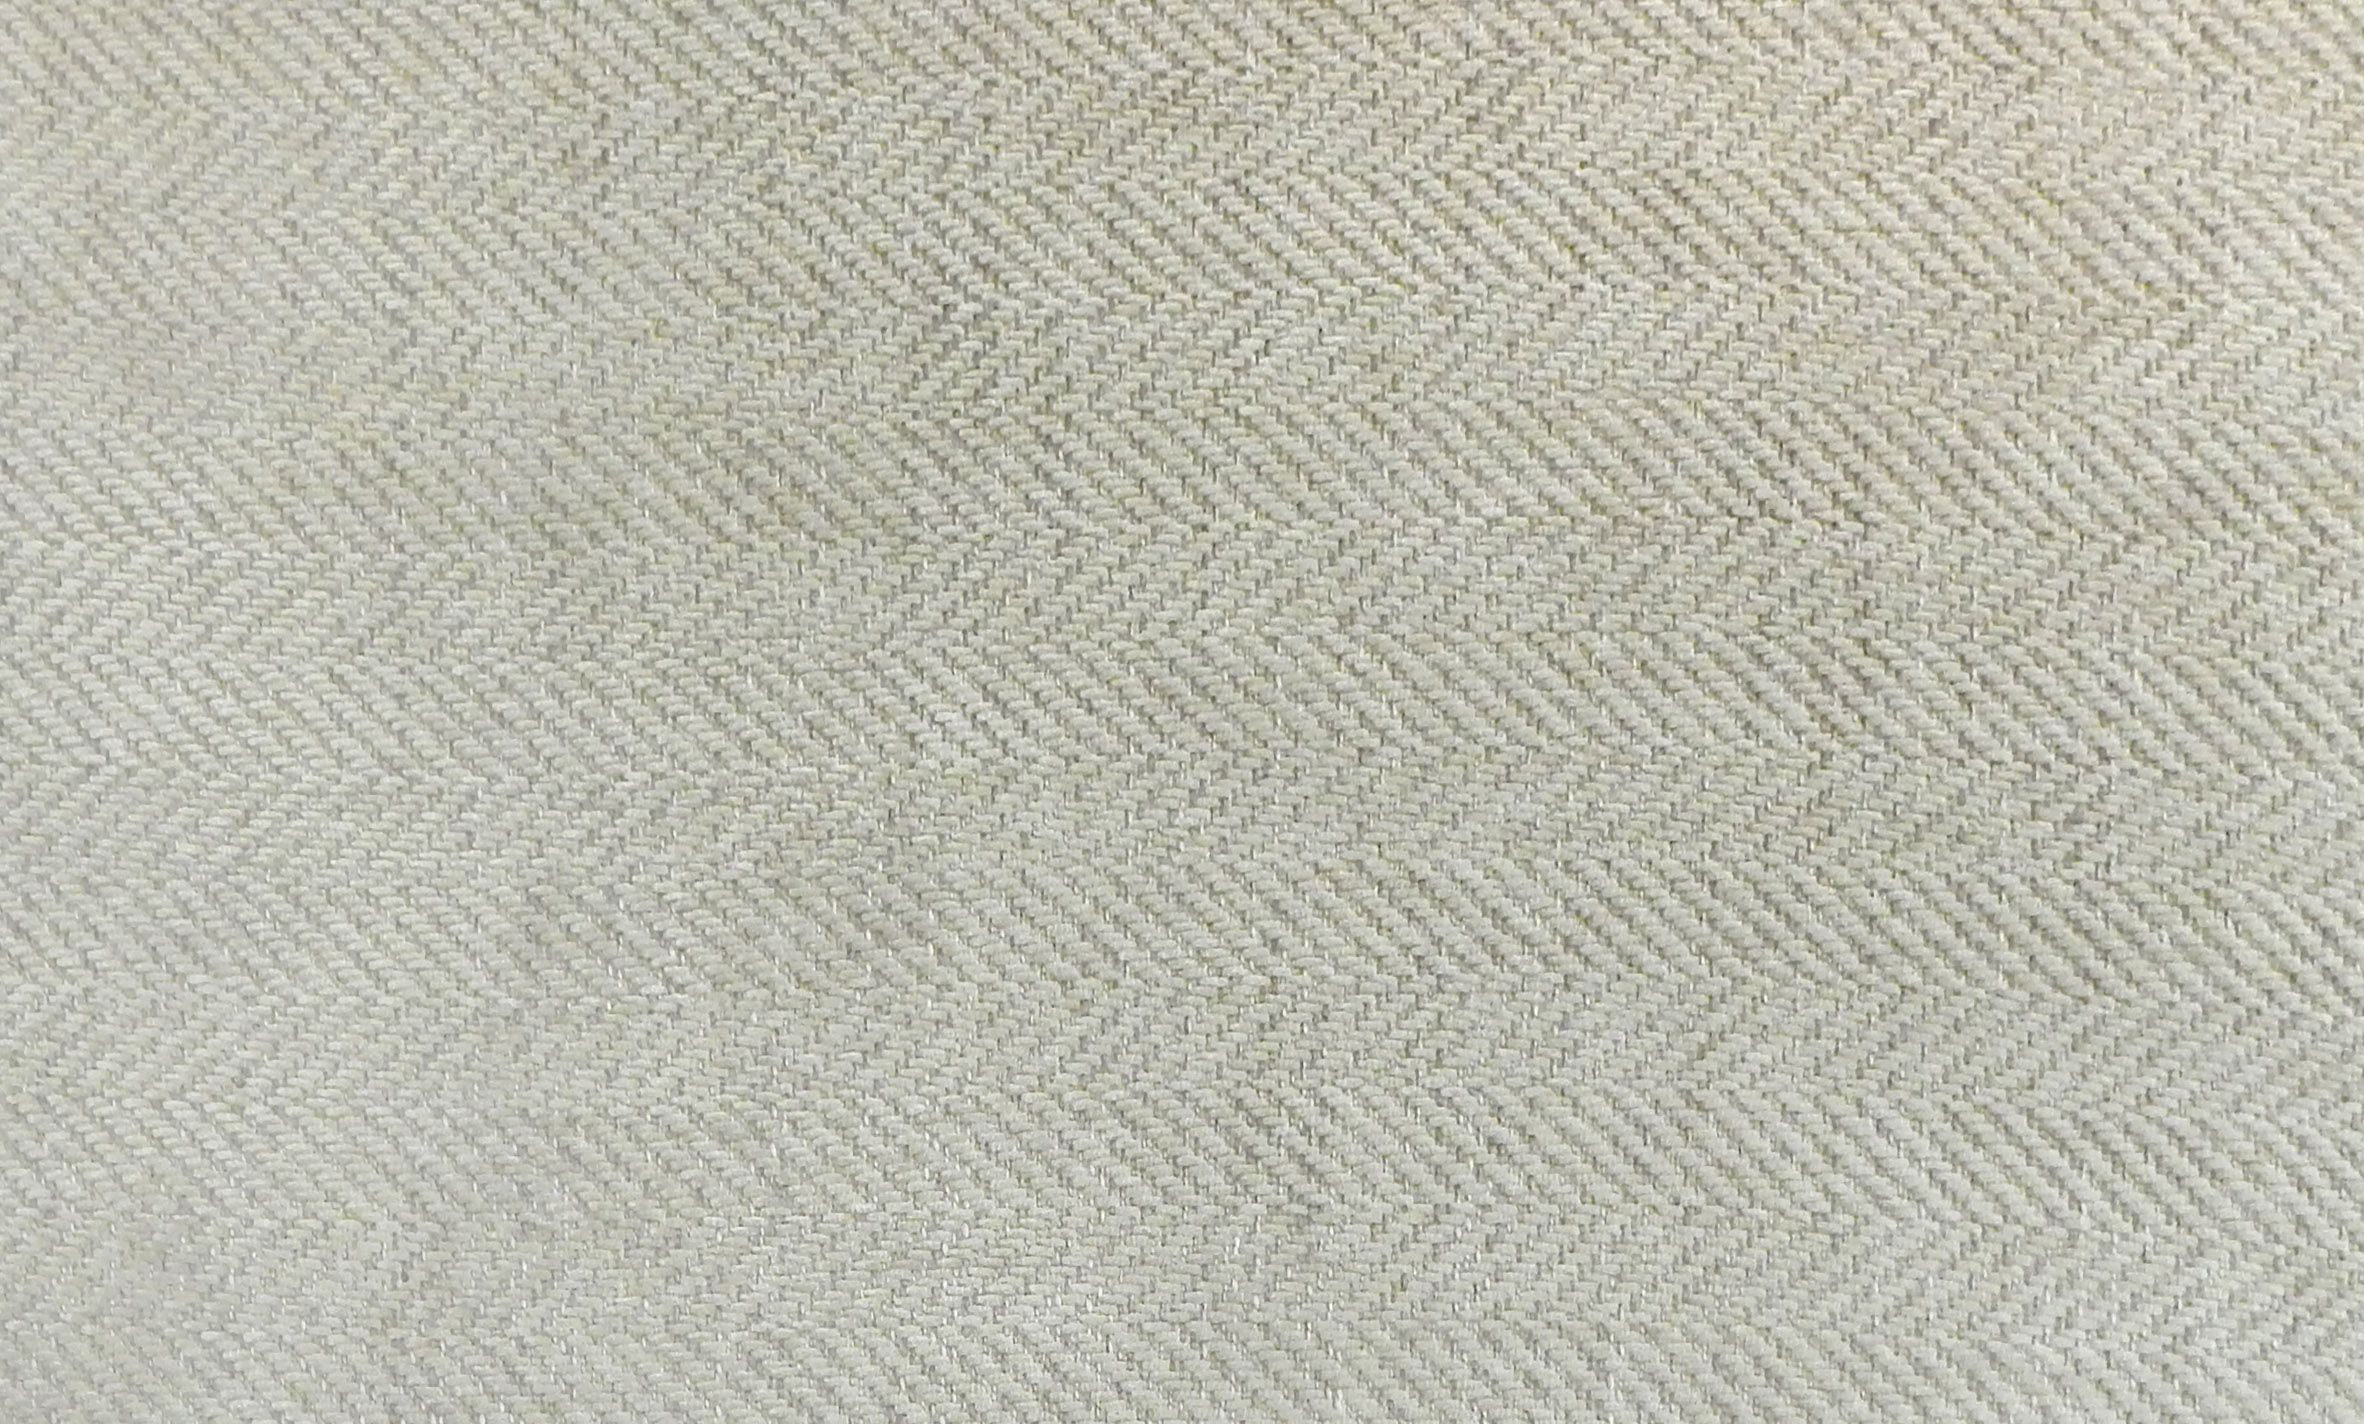 Image Result For Fabric Texture Fabric Textures Texture Modern Bed Sheets